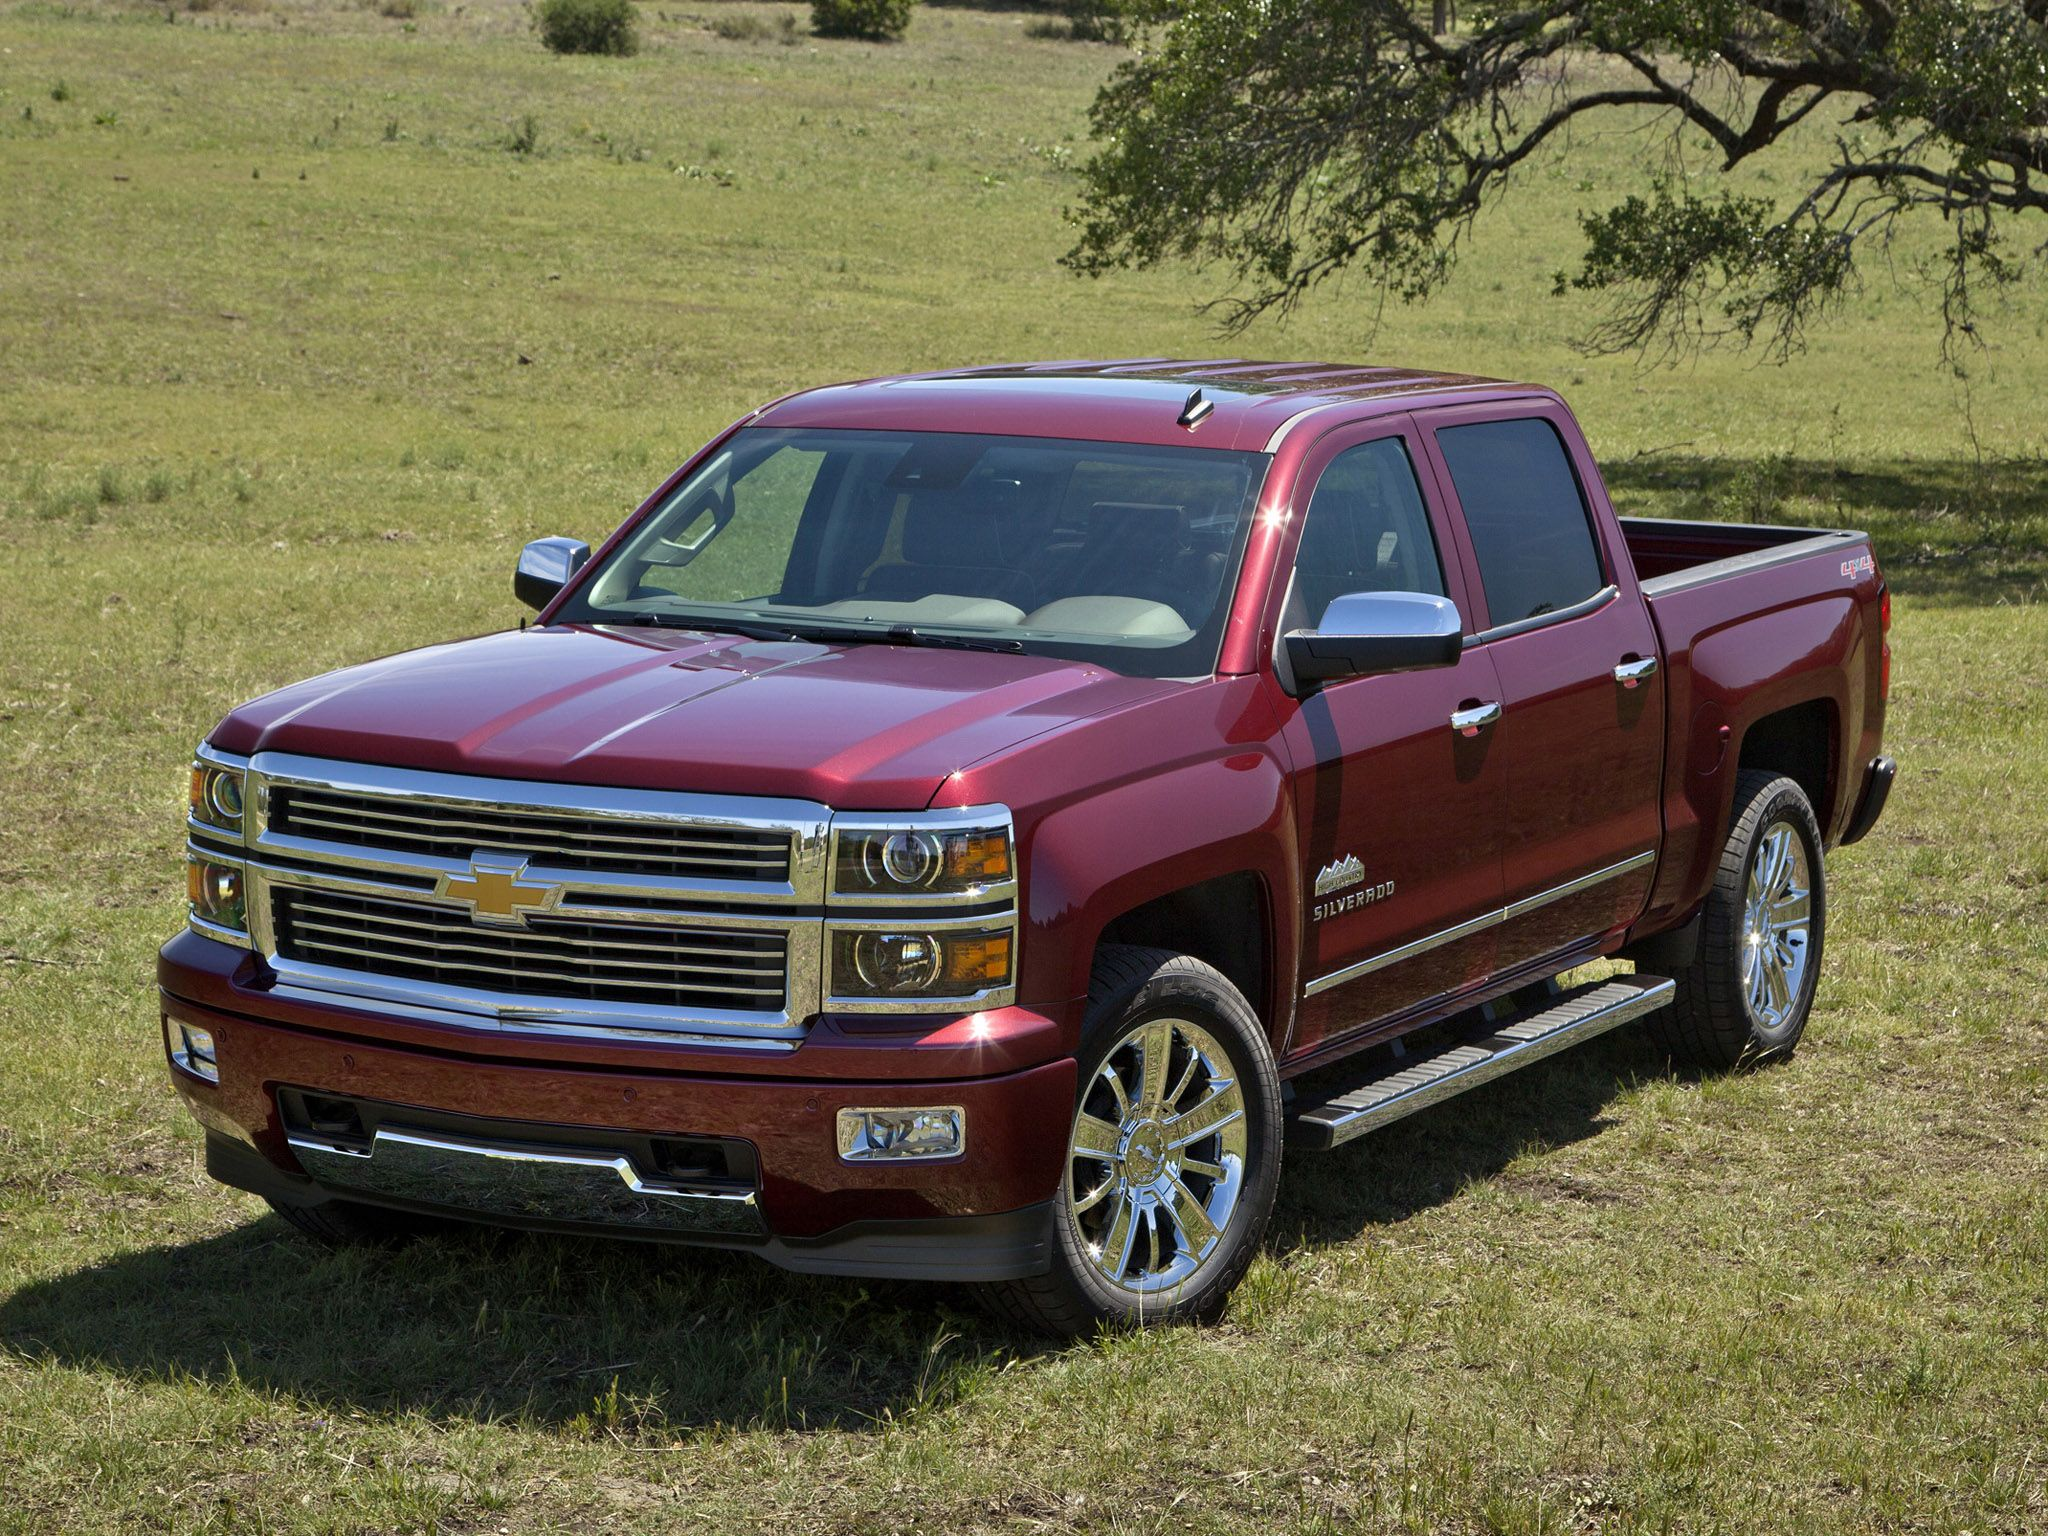 First Big Purchase Once Im Hired A 2015 Burgundy Chevrolet Silverado Truck Chevy Silverado Chevy Silverado High Country Silverado High Country